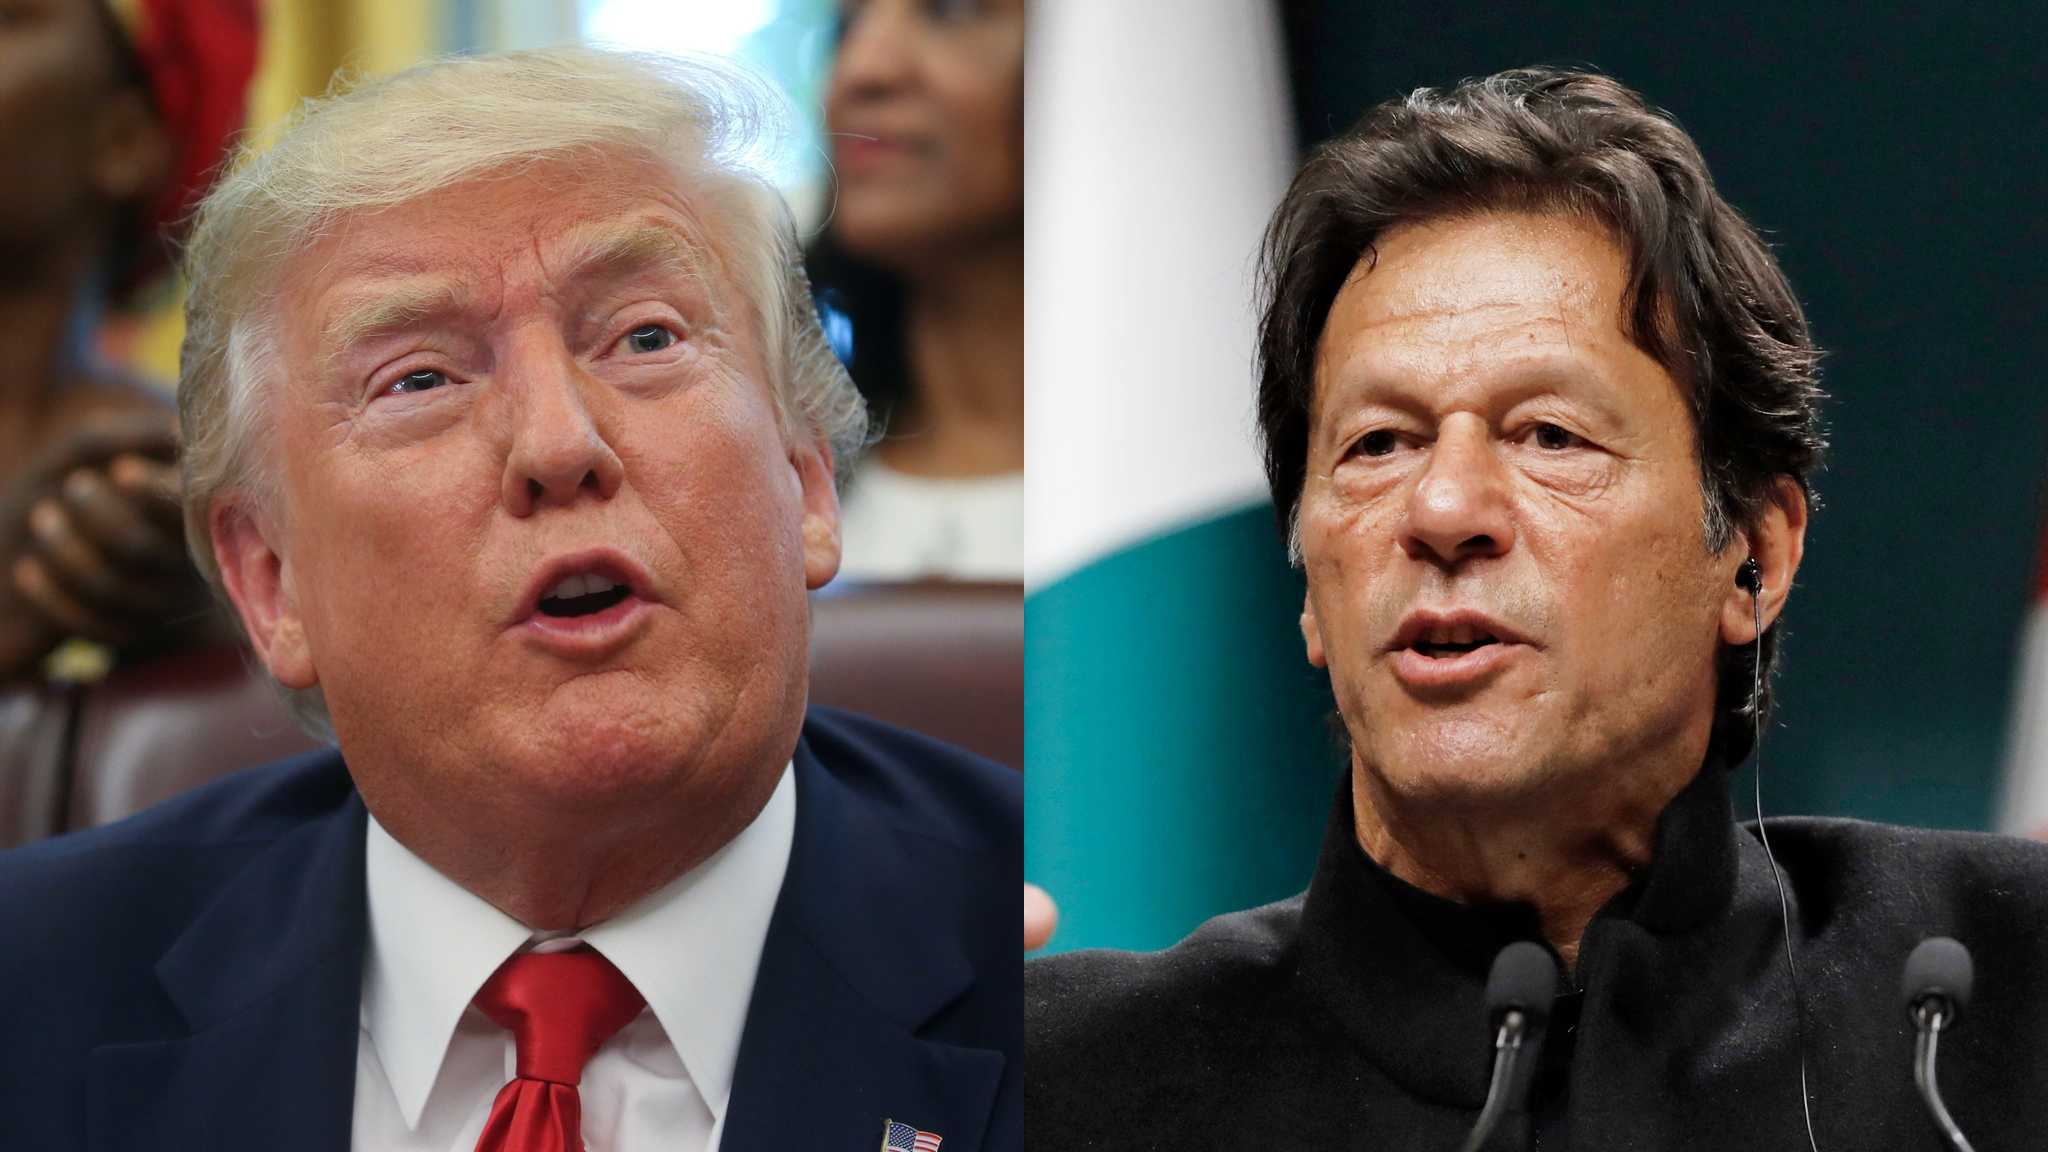 https   s3 ap northeast 1.amazonaws.com psh ex ftnikkei 3937bb4 images 4 6 6 4 21764664 1 eng GB Trump Khan - Imran Khan to Discuss Afghanistan Peace Deal with Trump